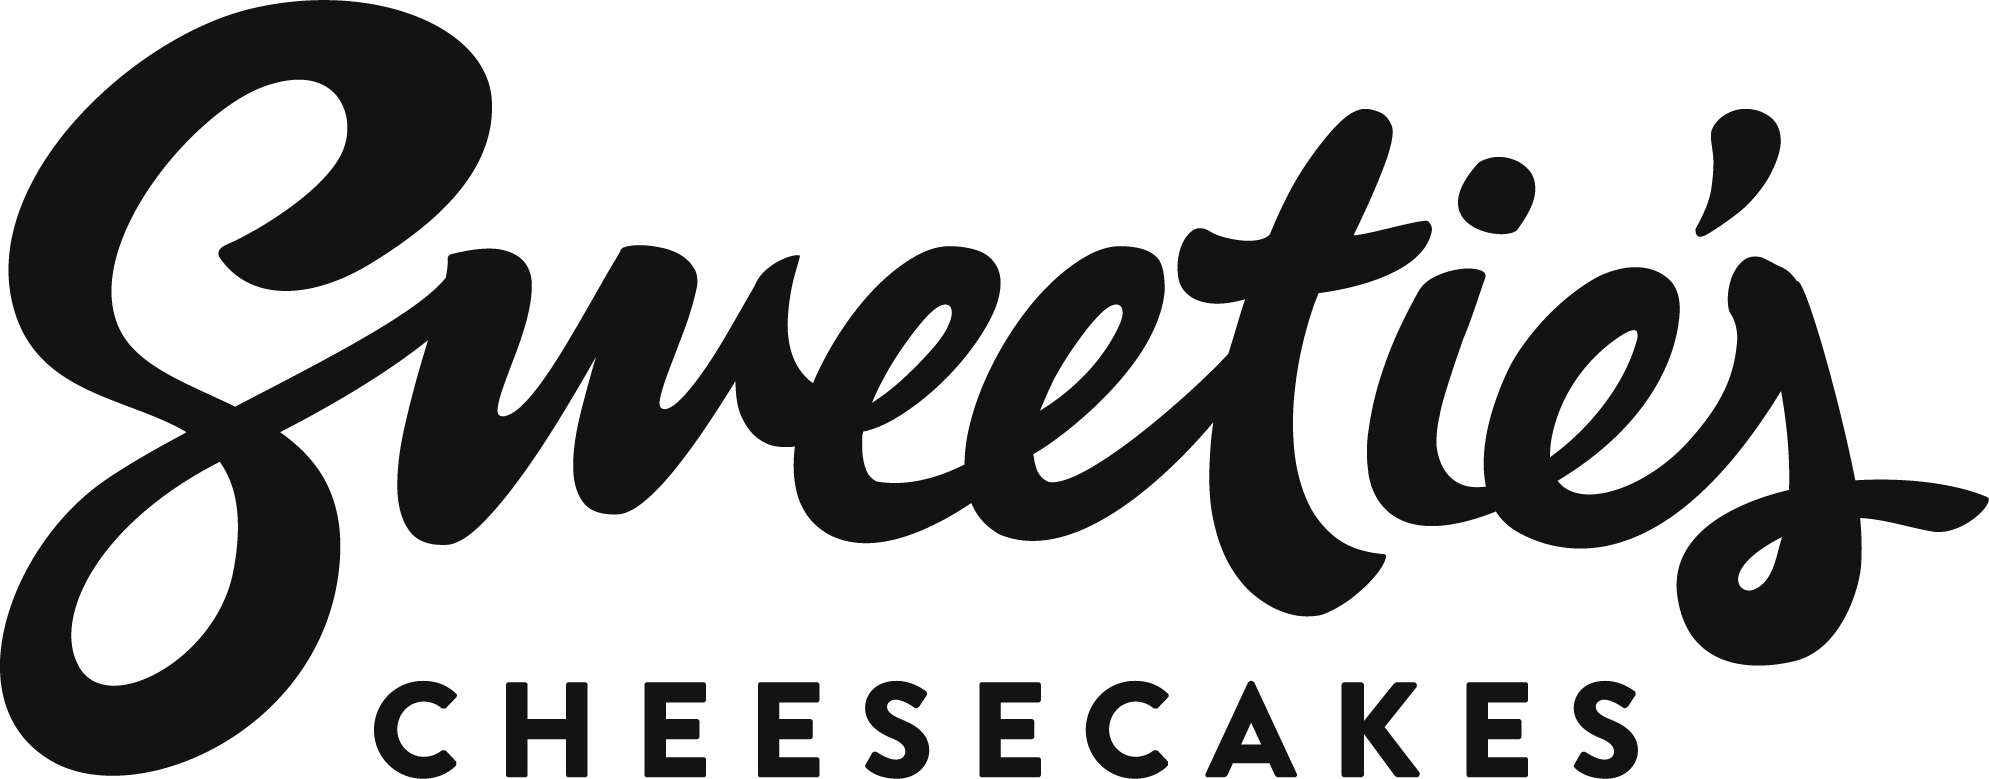 Sweetie's Cheesecakes Online Store